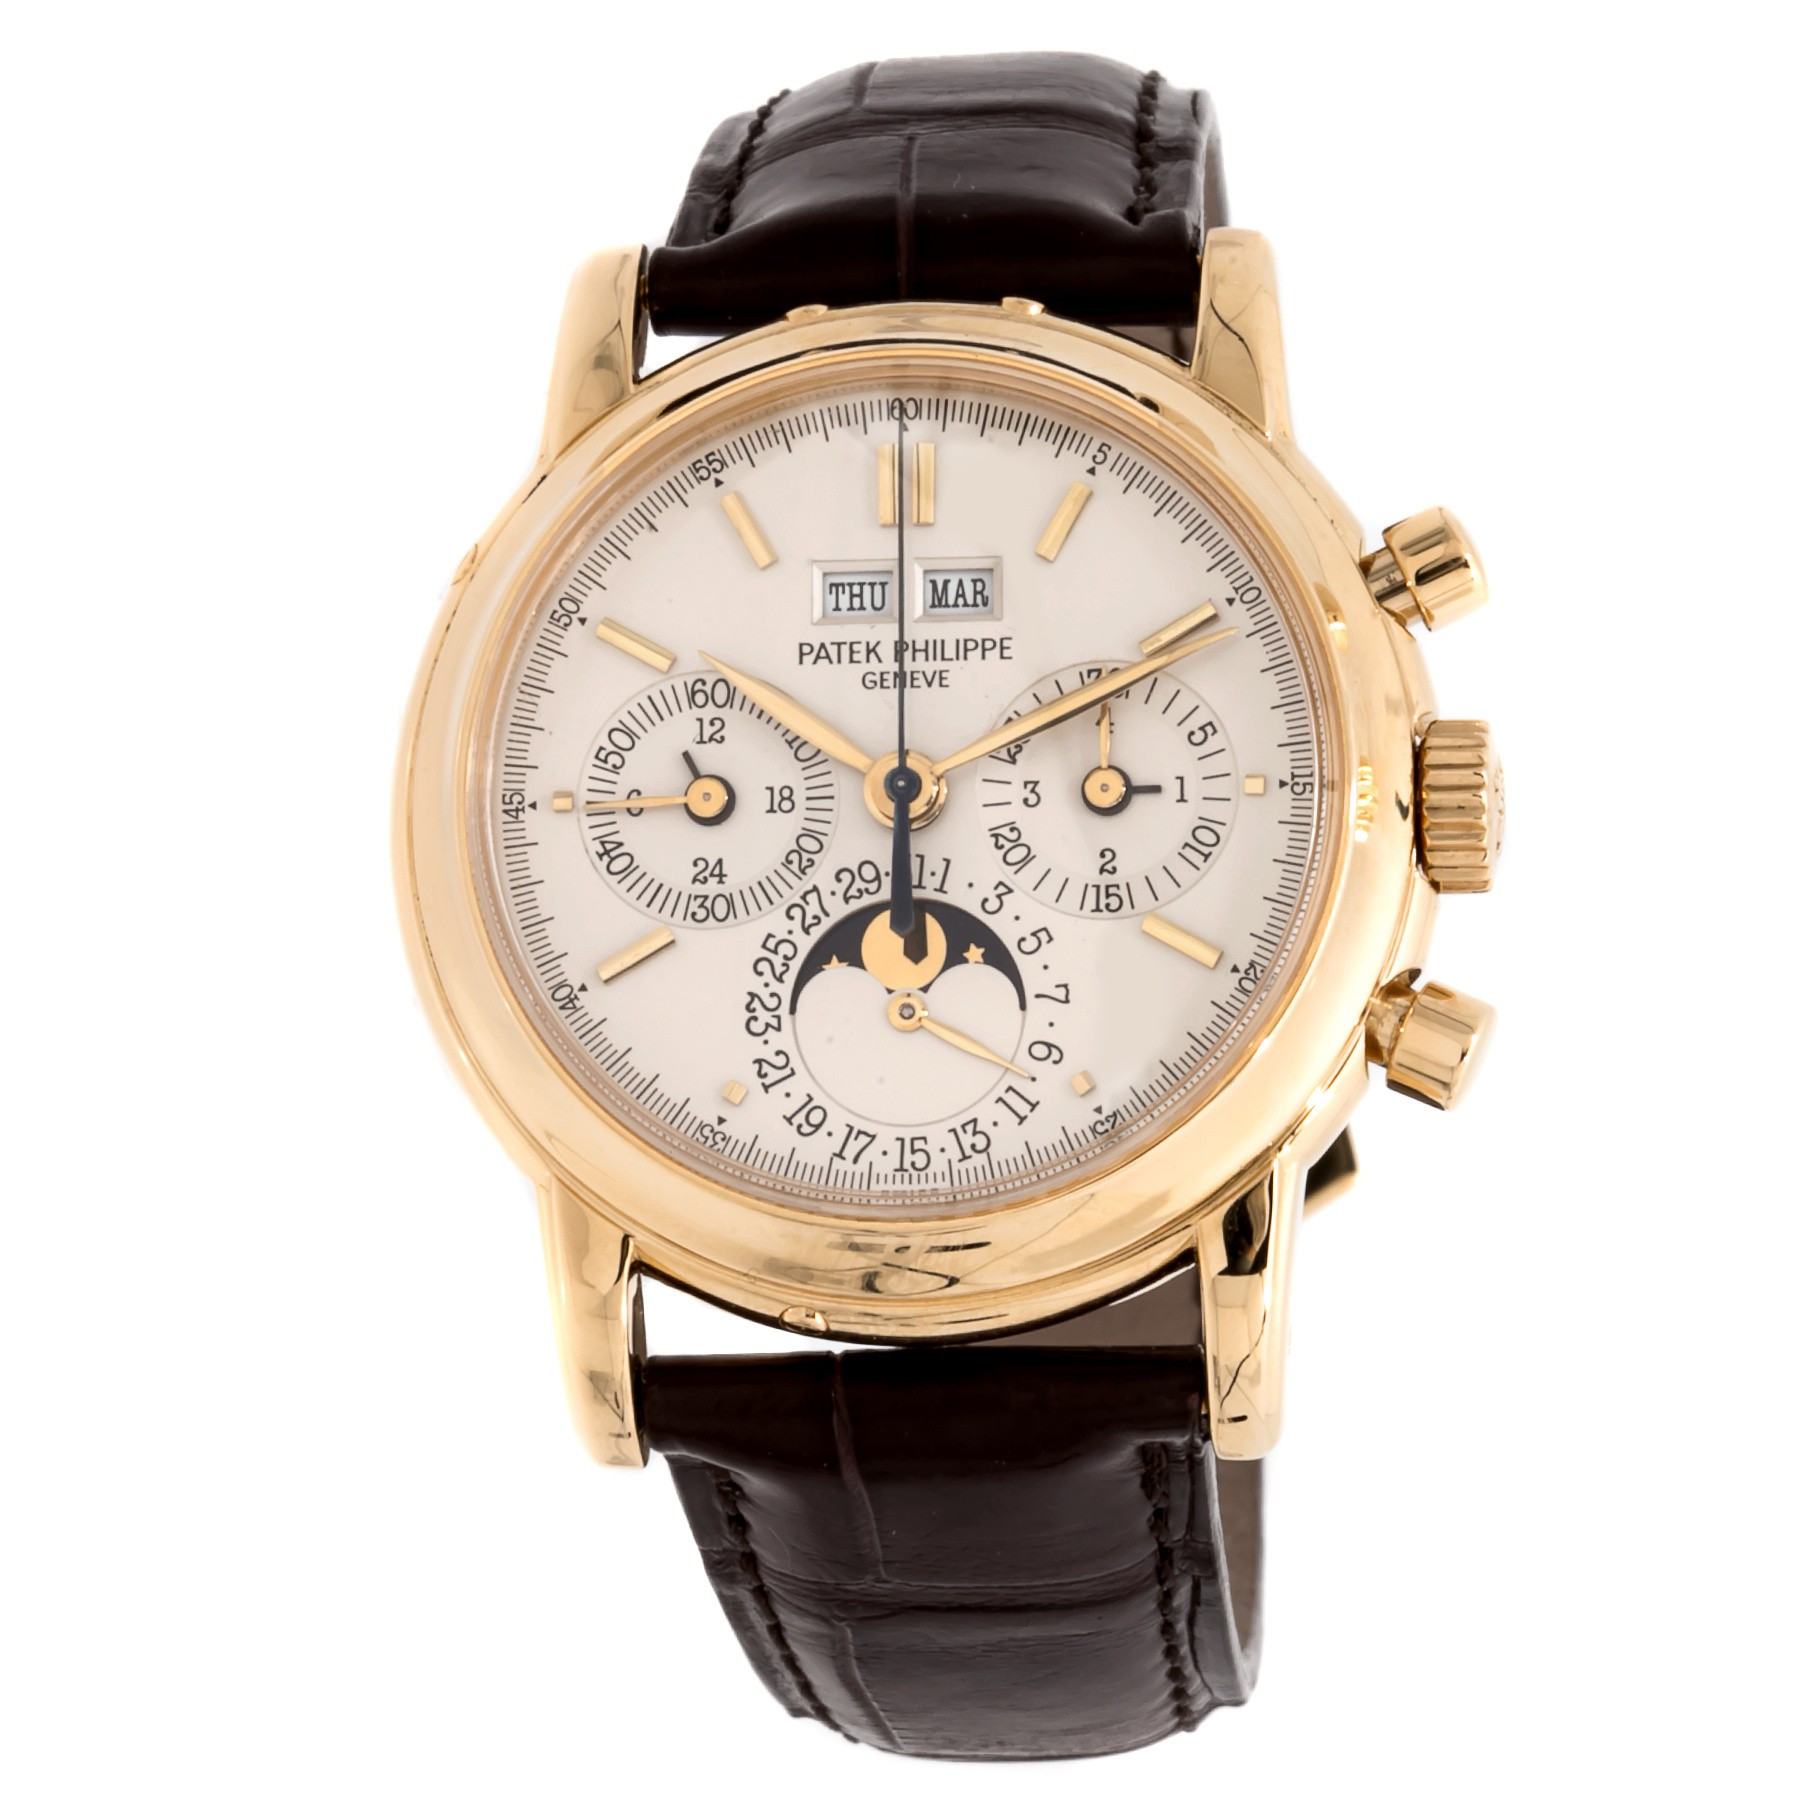 Patek Philippe Perpetual Calendar Chronograph Ref 3970EJ in Yellow Gold   Second Series